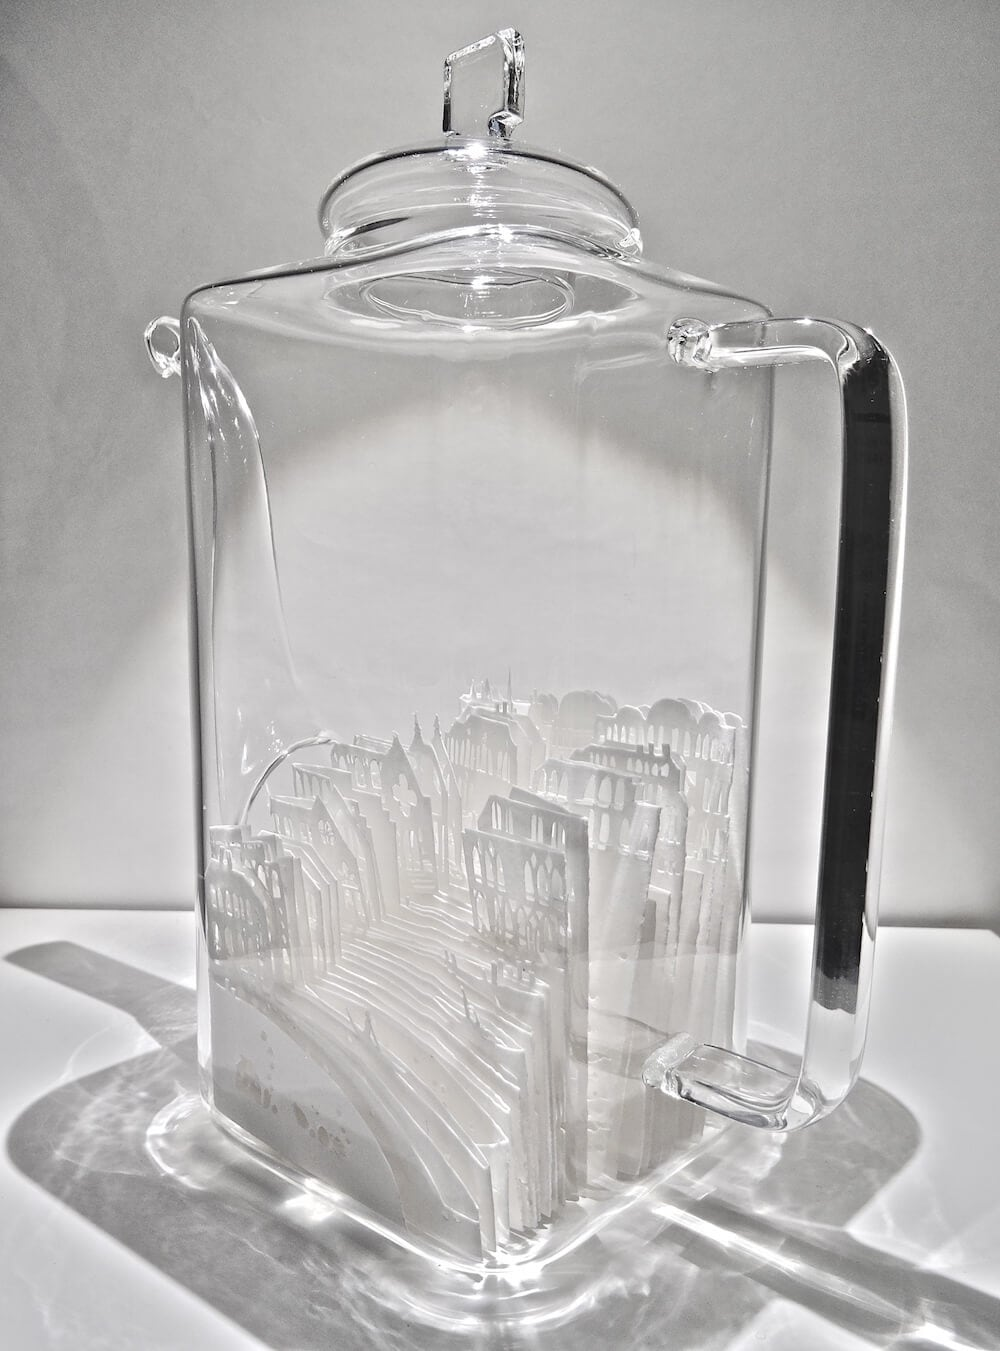 paper cities enclosed in glass fy 2